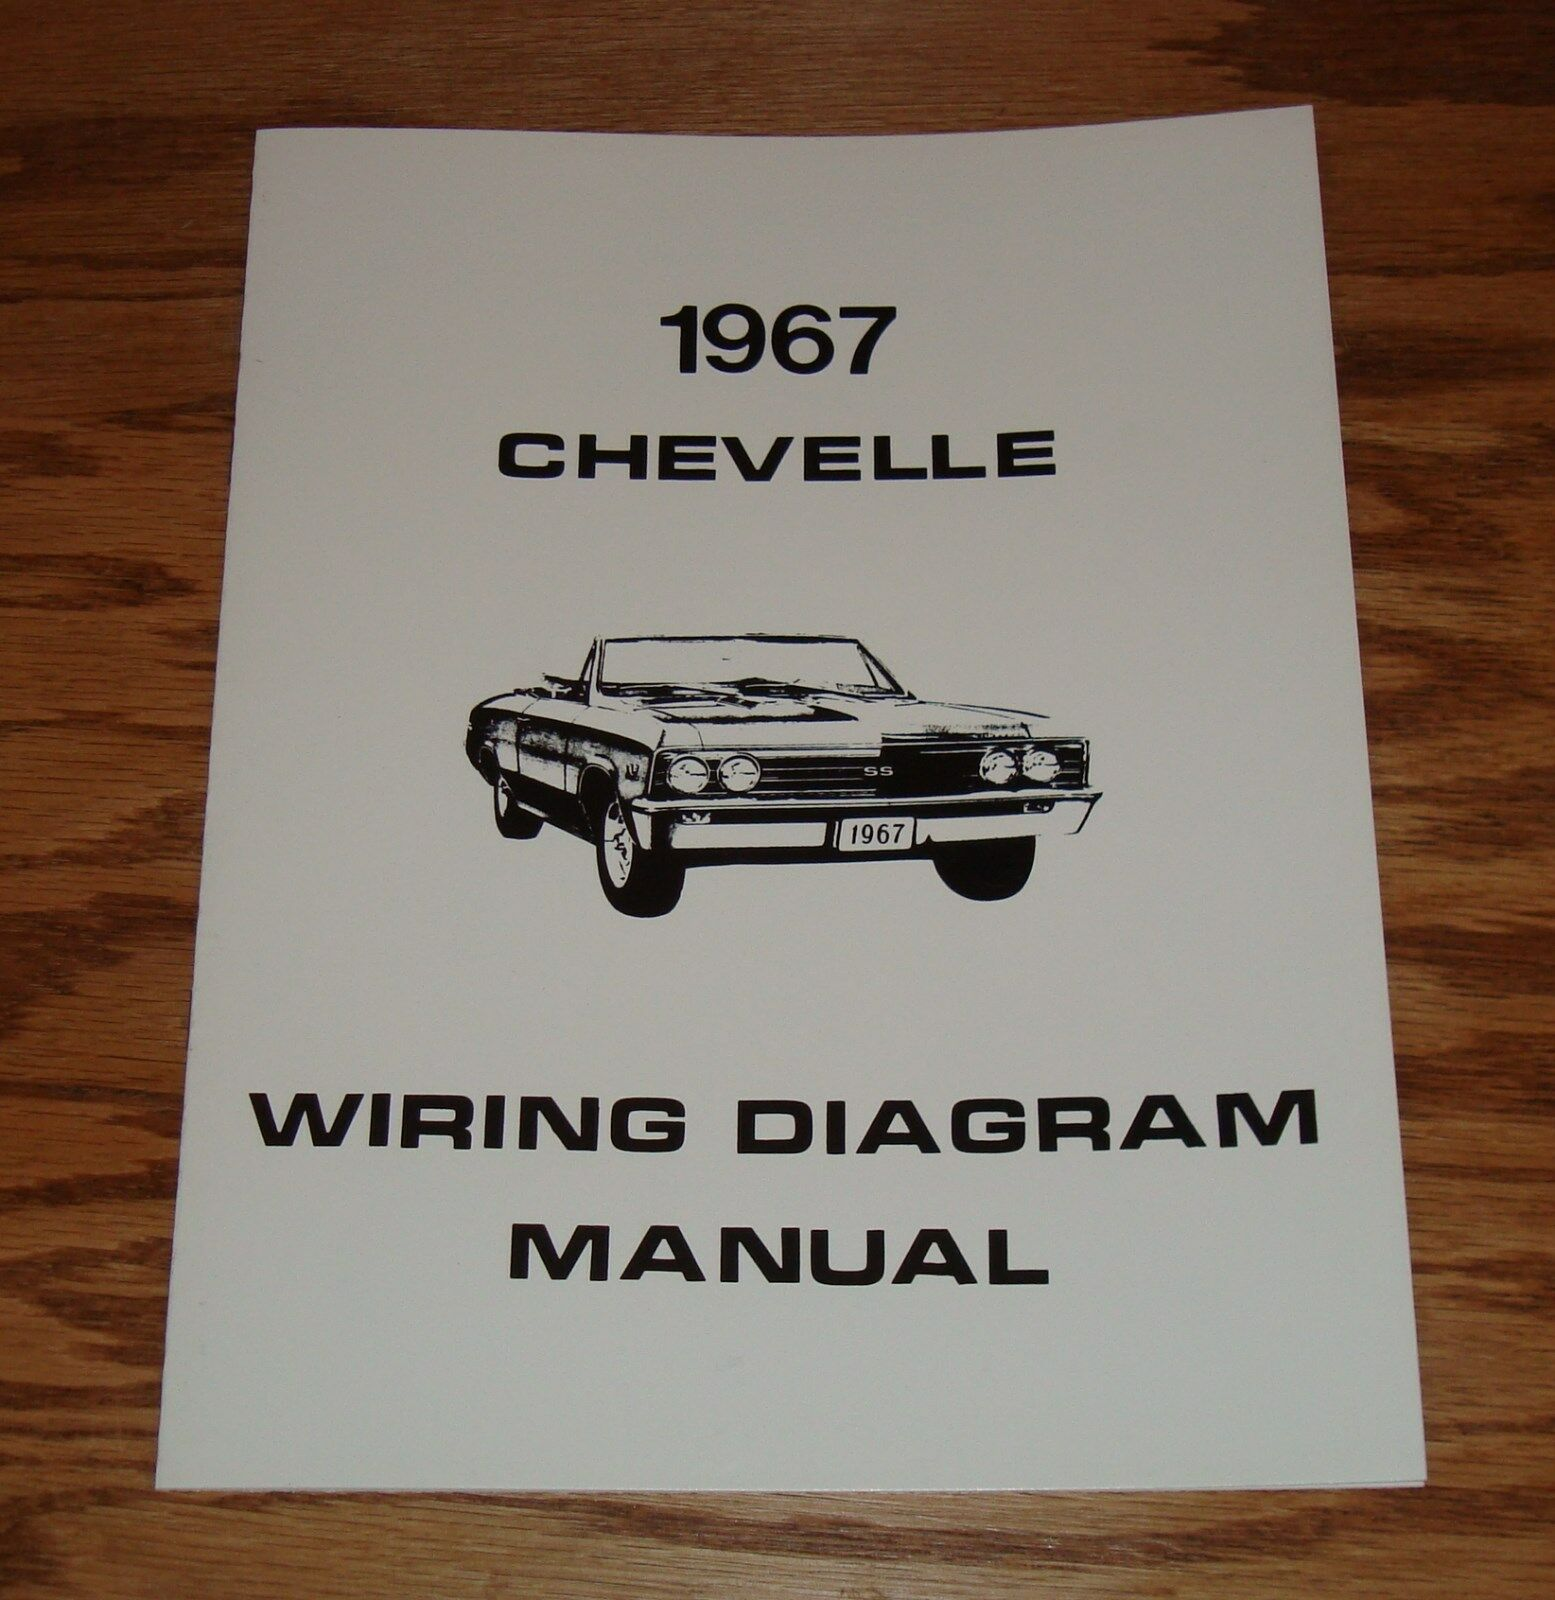 1967 Chevrolet Chevelle Wiring Diagram Manual 67 Chevy SS 1 of 1Only 1  available ...